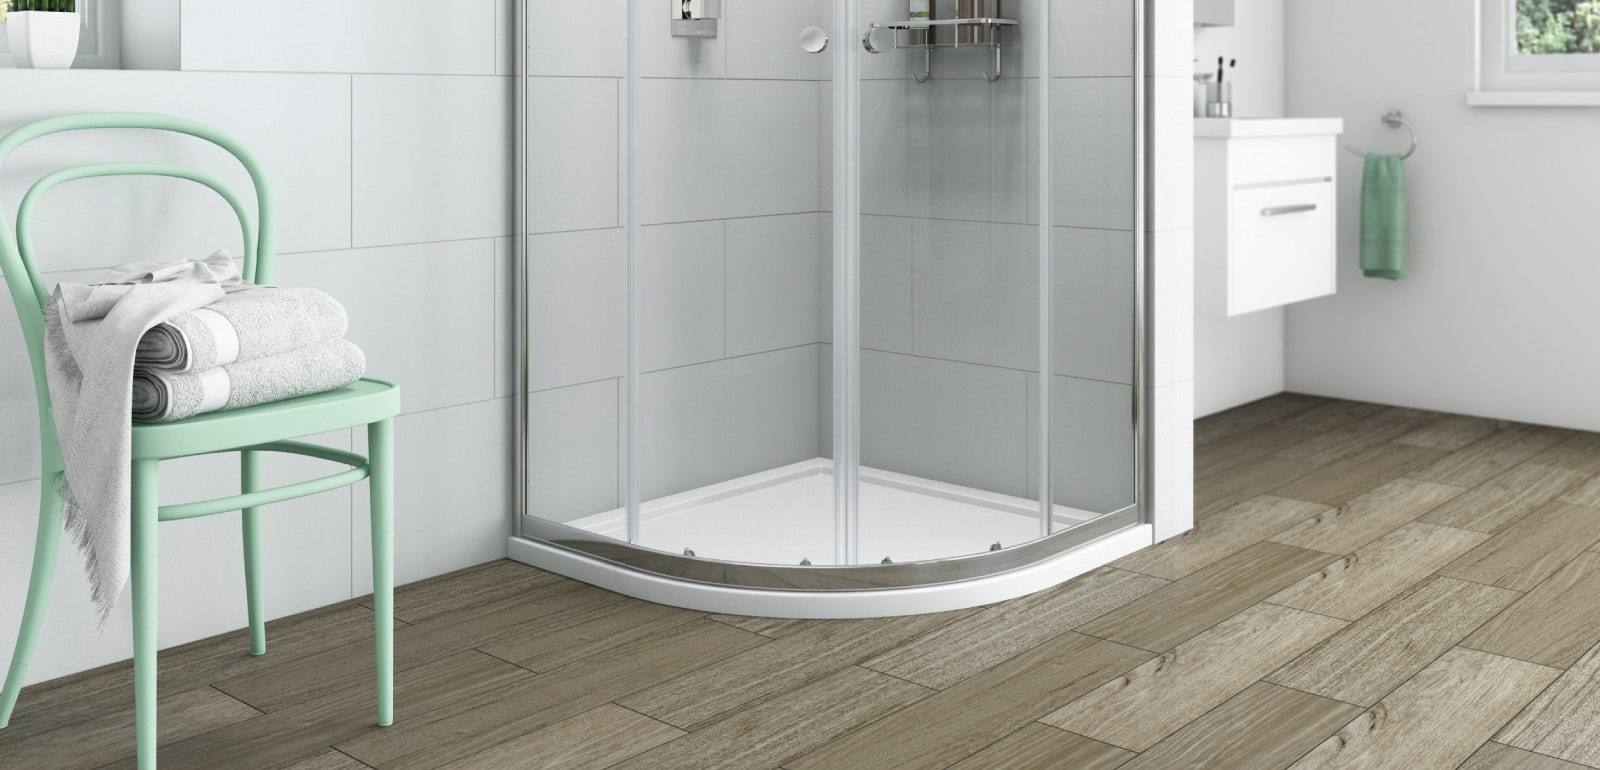 Benefits of a Quadrant Shower Enclosure VictoriaPlumcom